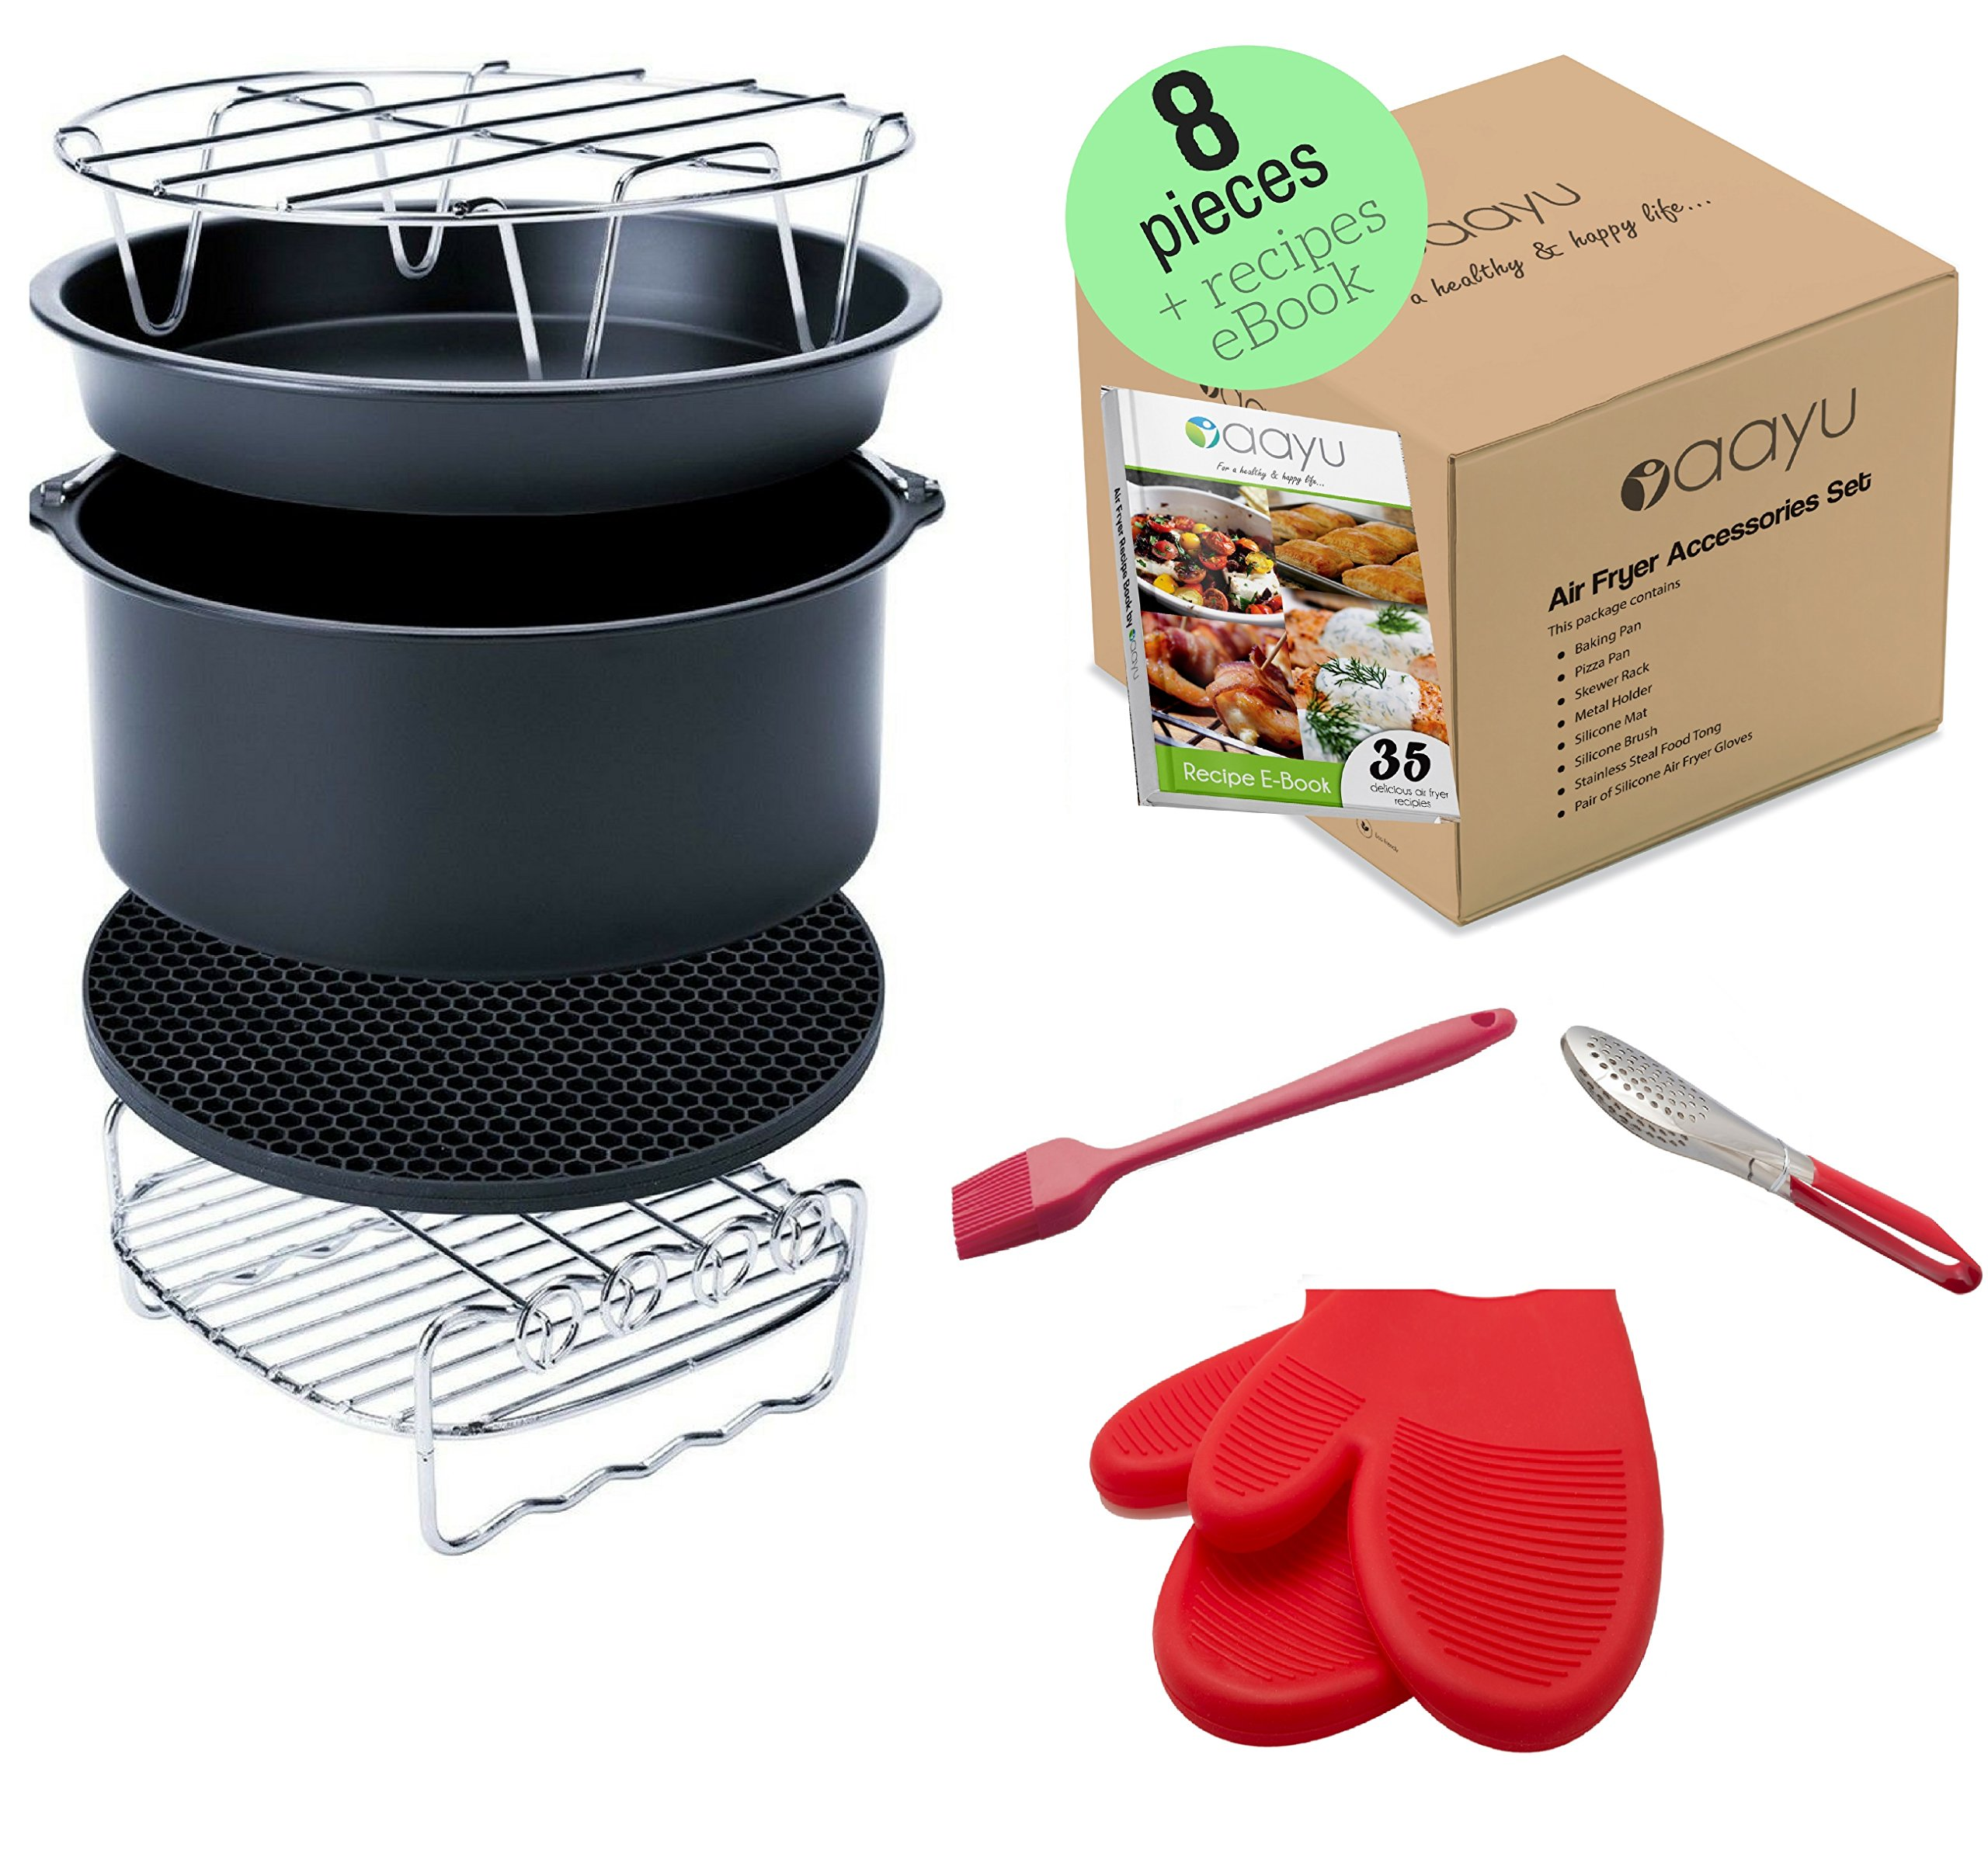 Premium Air Fryer Accessories Set - 8 Pieces - For GoWise Philips Farberware Power AirFryer and more brands - Fit all 3.7QT to 5.8QT (Universal)